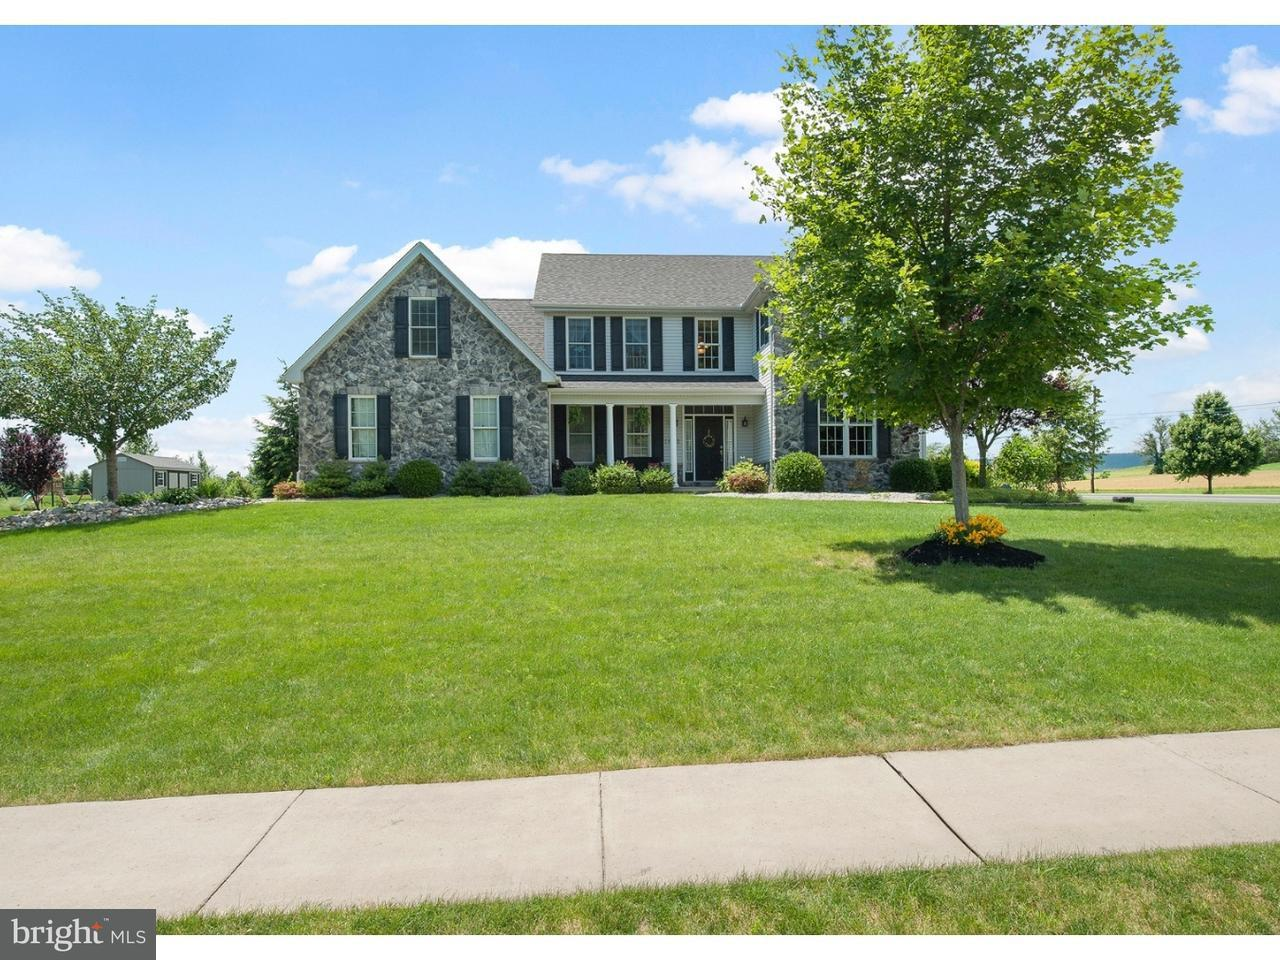 Single Family Home for Sale at 1695 KINGS Court Pen Argyl, Pennsylvania 18072 United States